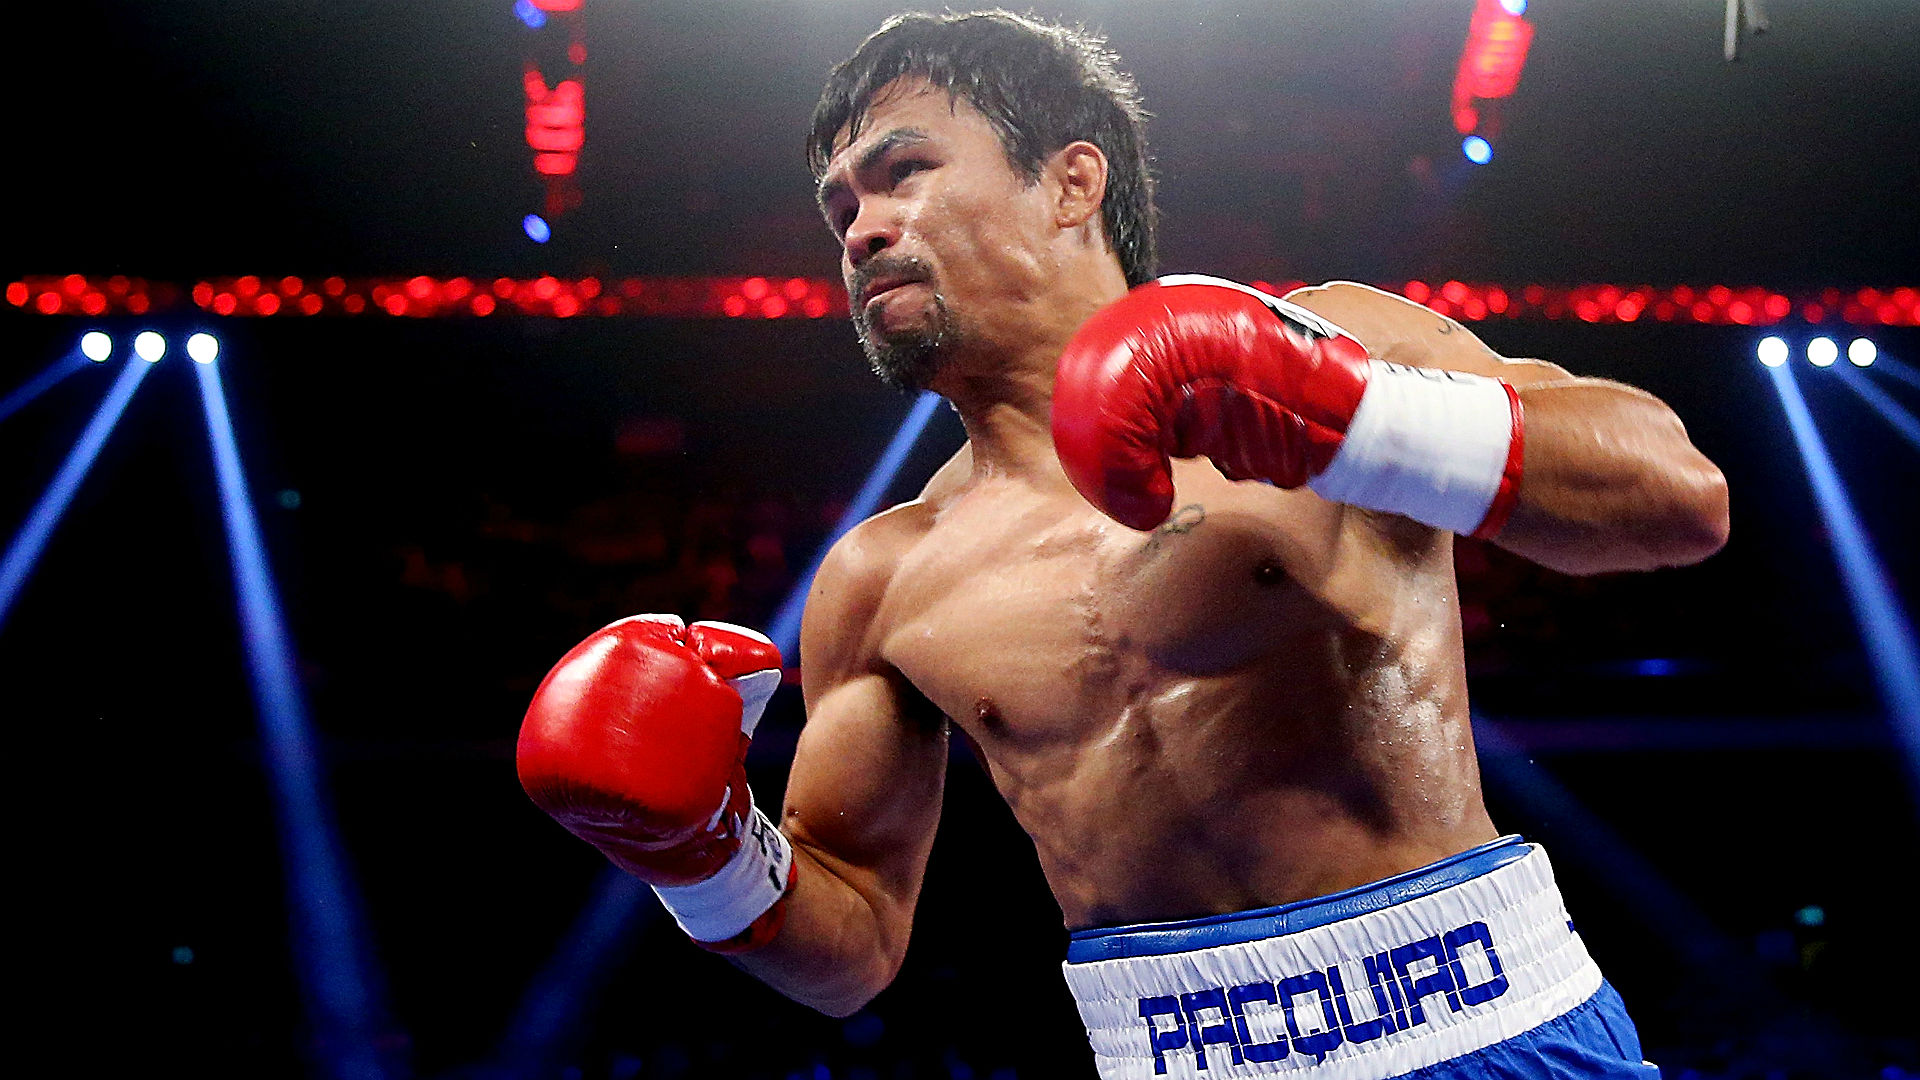 8. Manny Pacquiao (FIL)